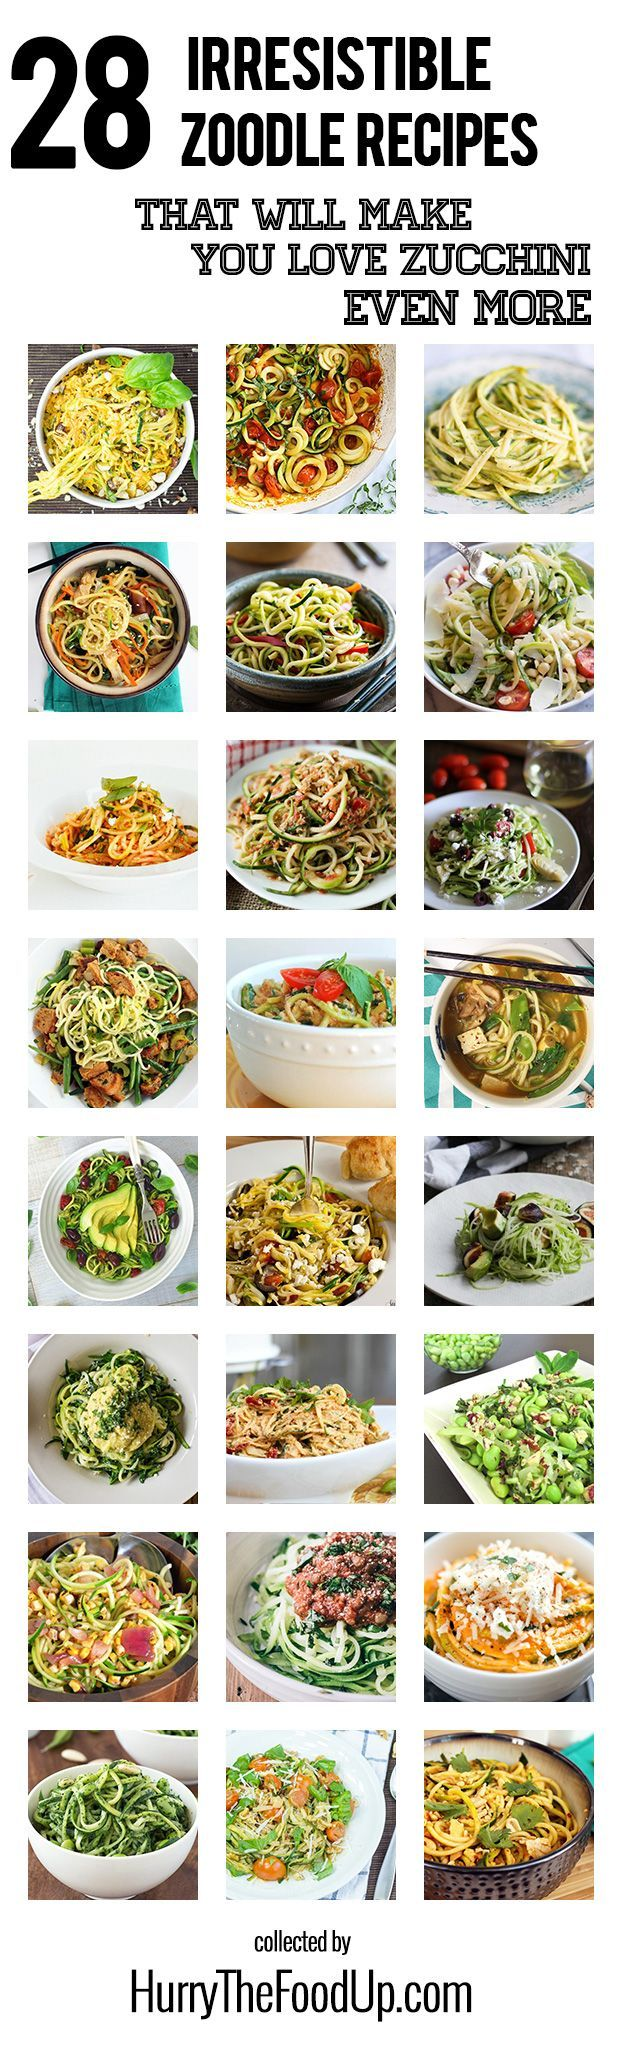 28 Irresistible and Quick Zoodle (Zucchini Pasta) Recipes #zucchini #zoodles   hurrythefoodup.com